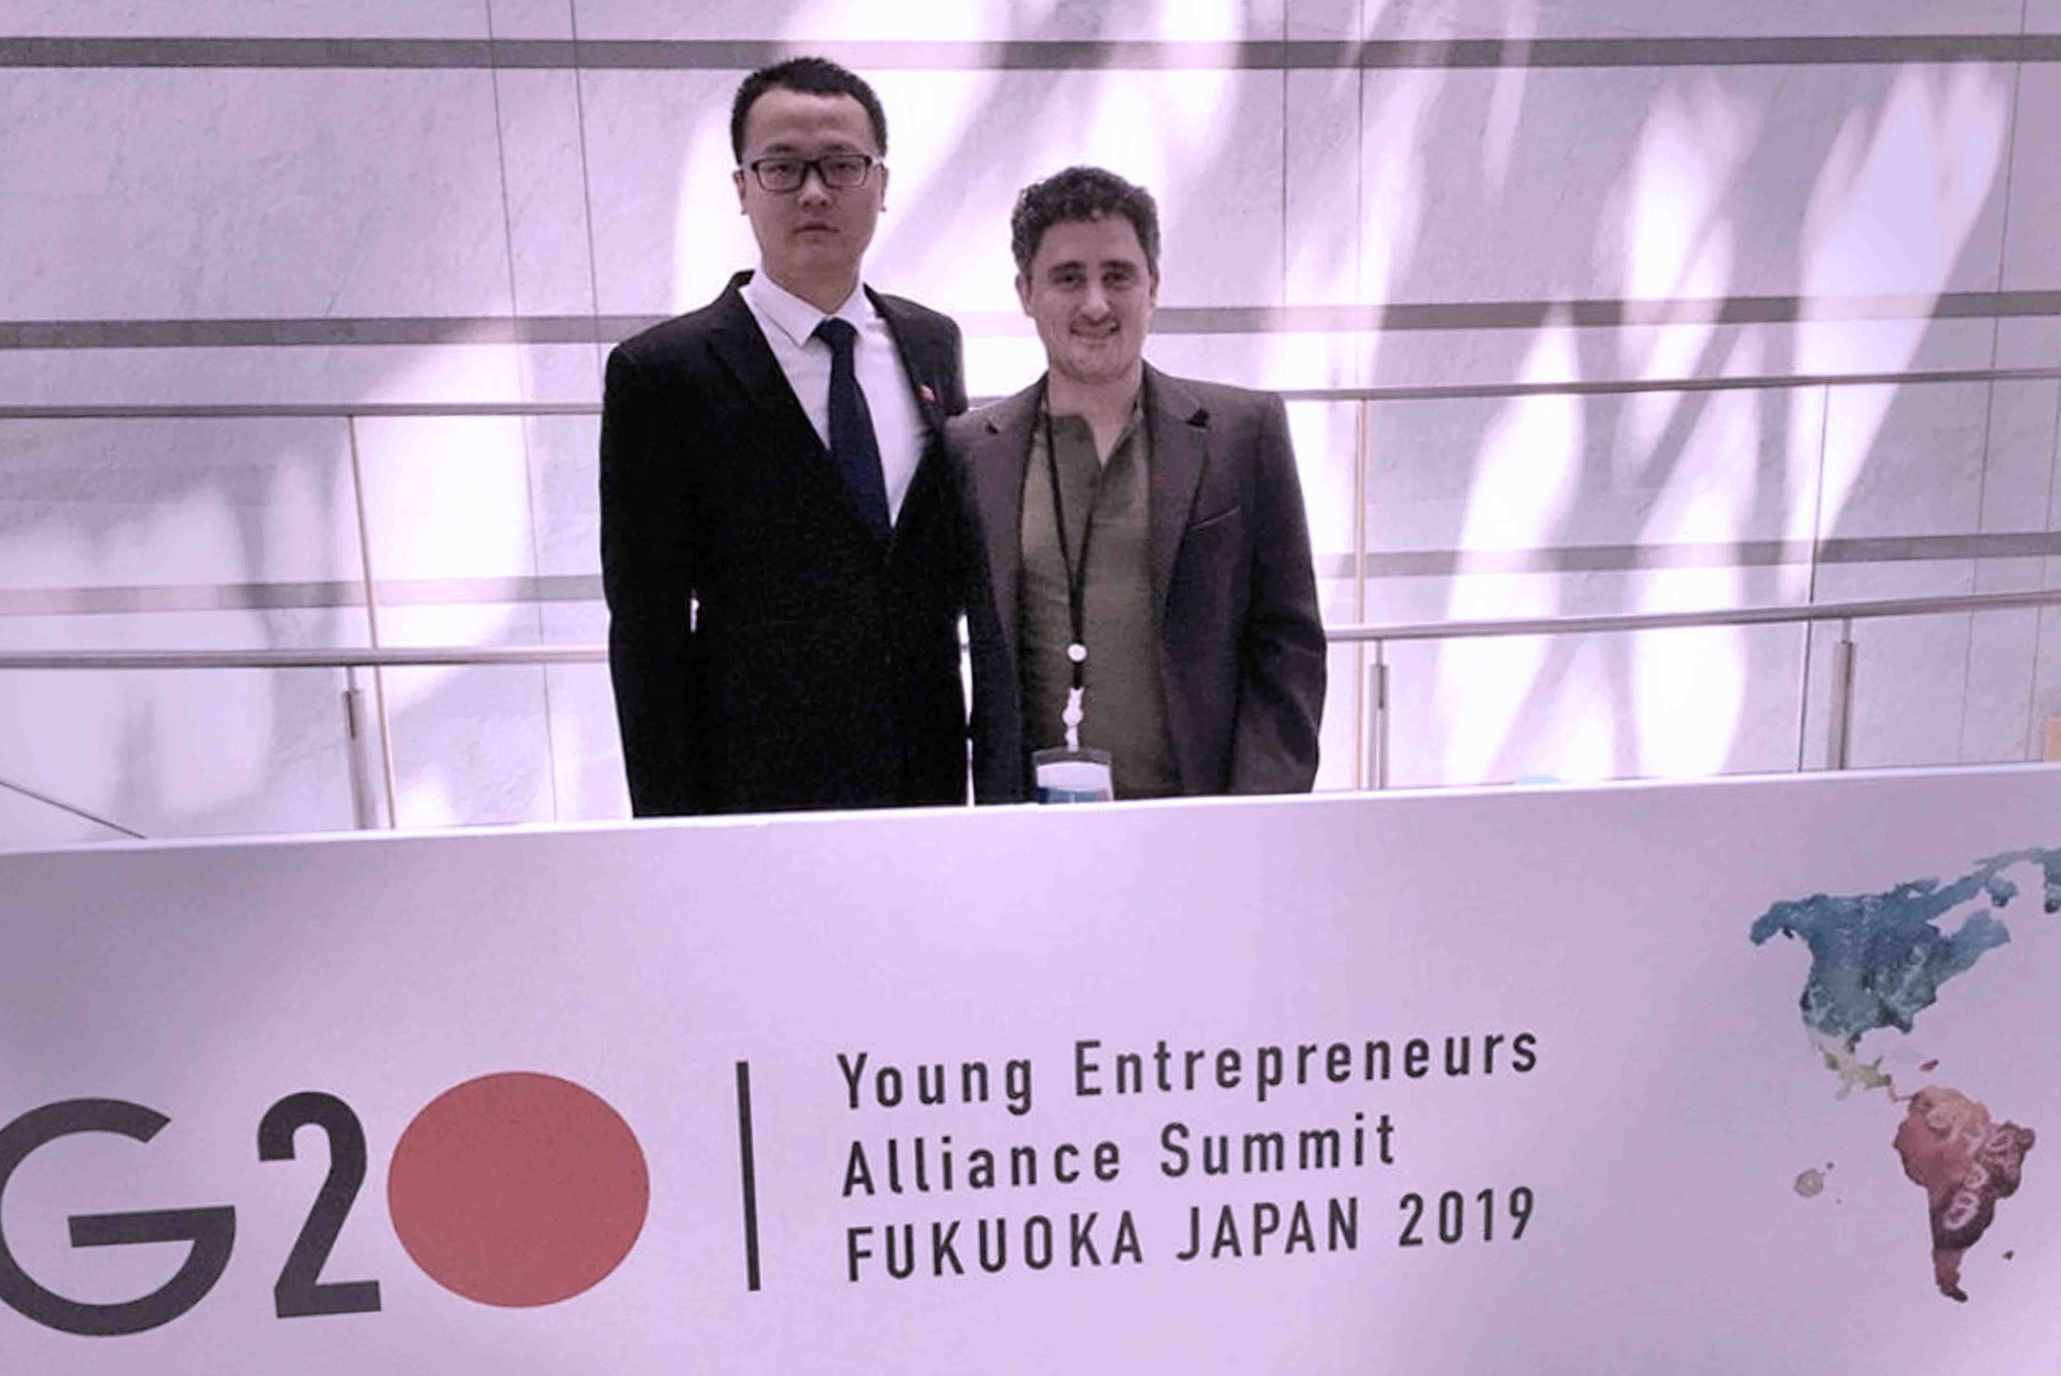 Francisco Santolo at the G20 Young Entrepreneurs' Alliance Summit in Japan